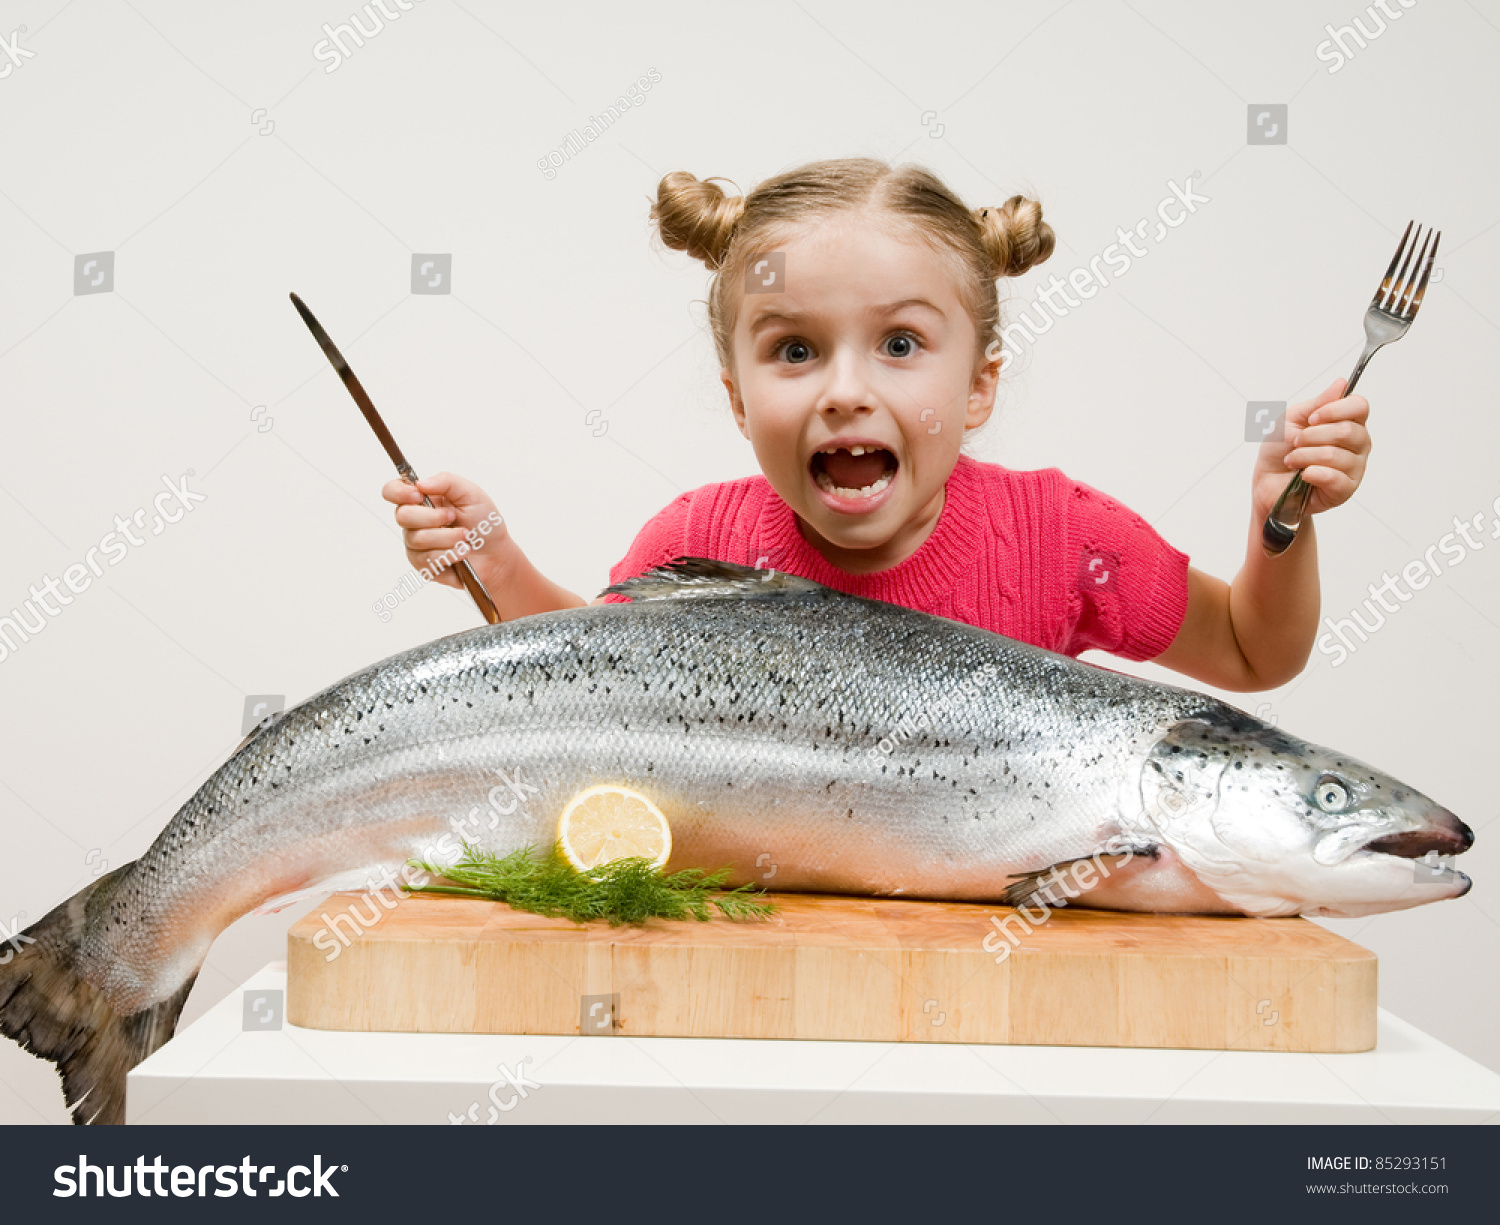 Healthy Eating Seafood Little Girl Big Stock Photo